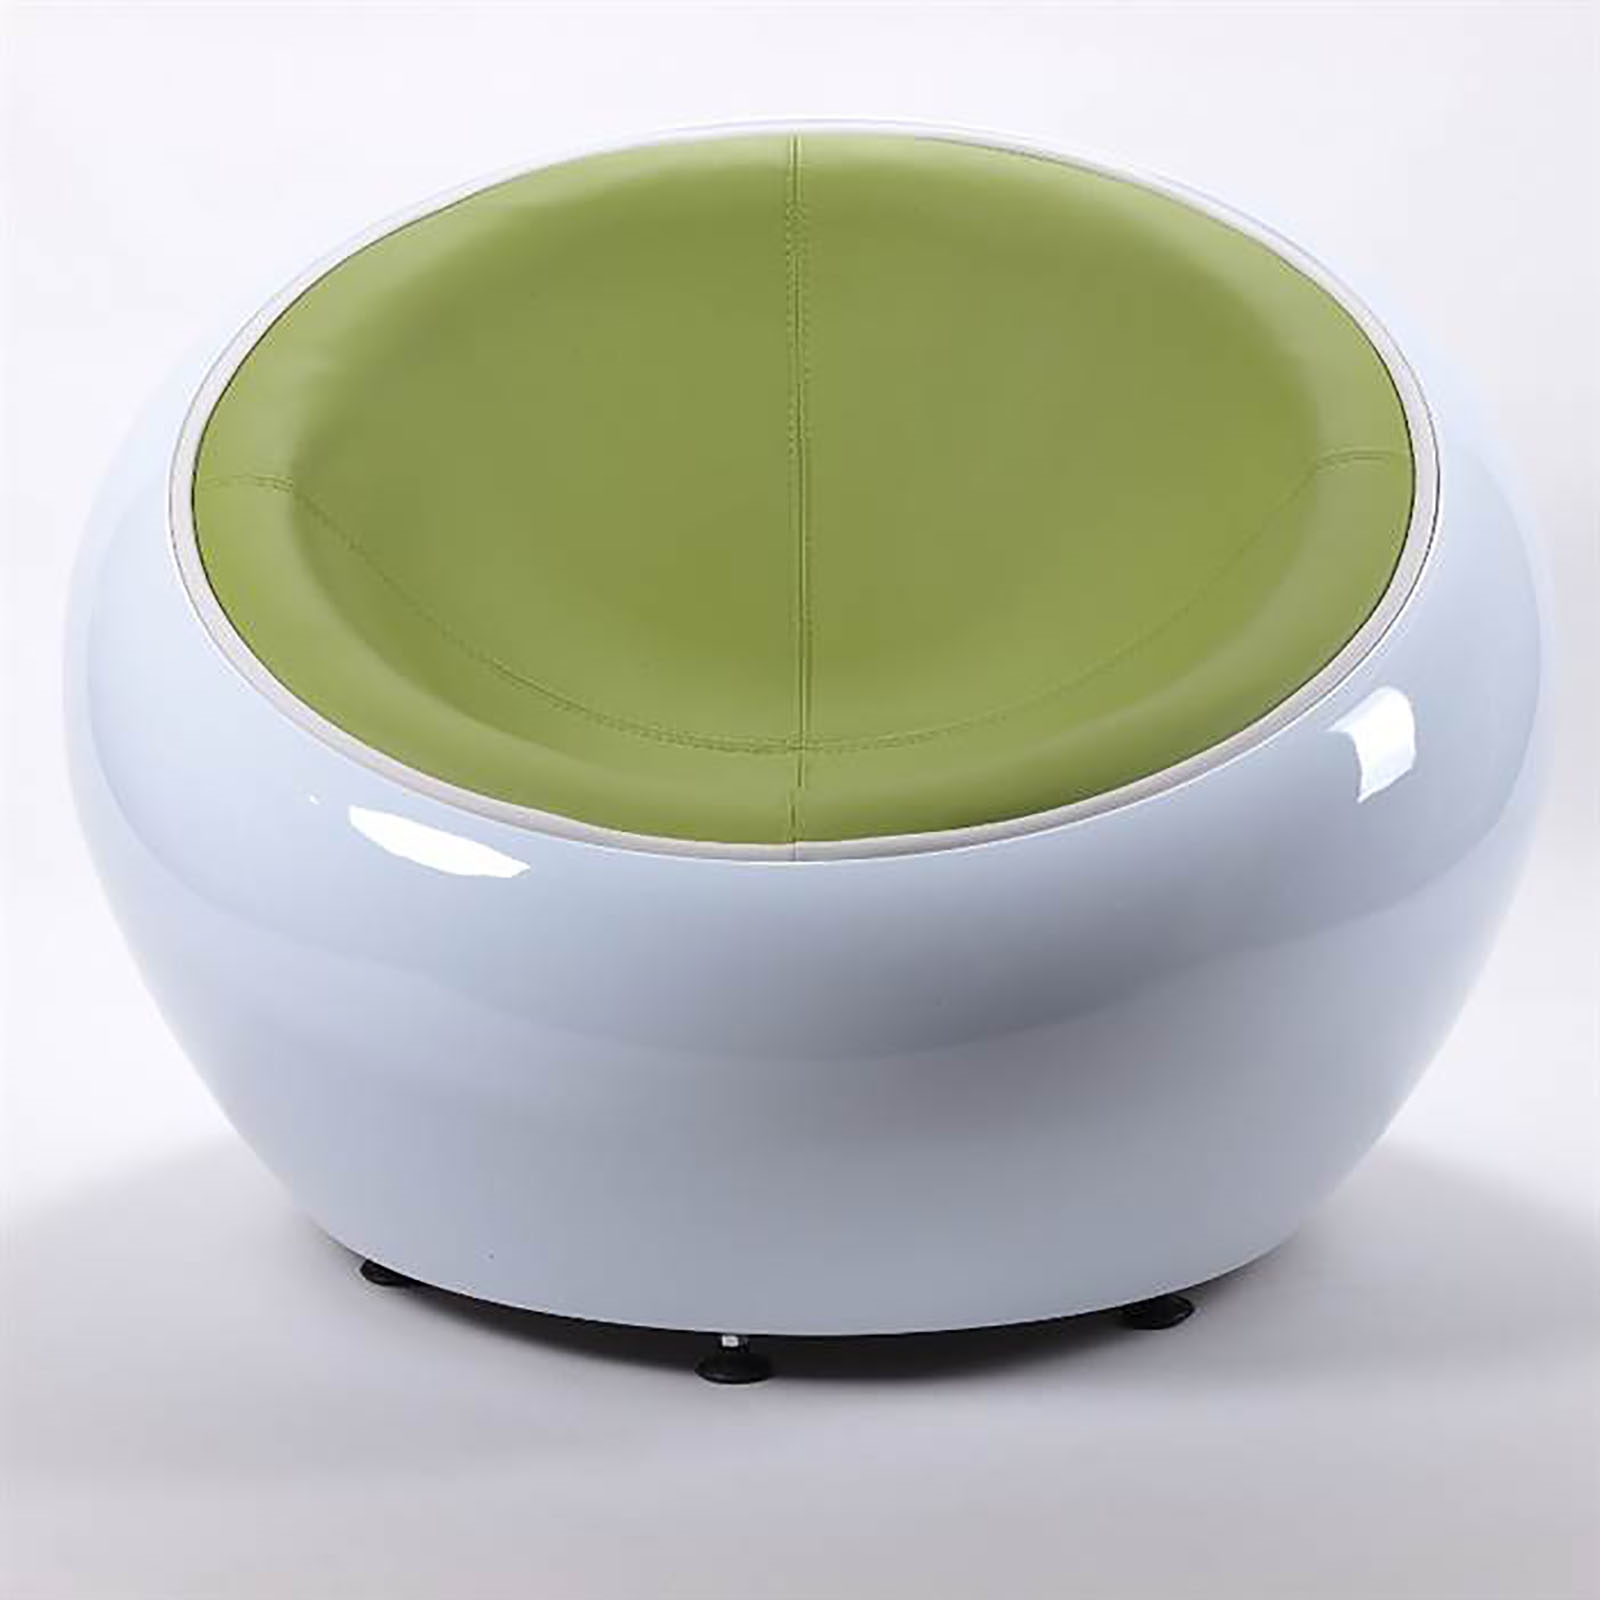 Egg Shell Chairs Retro Lounge Egg Chair White Green Bowl Lounge Design